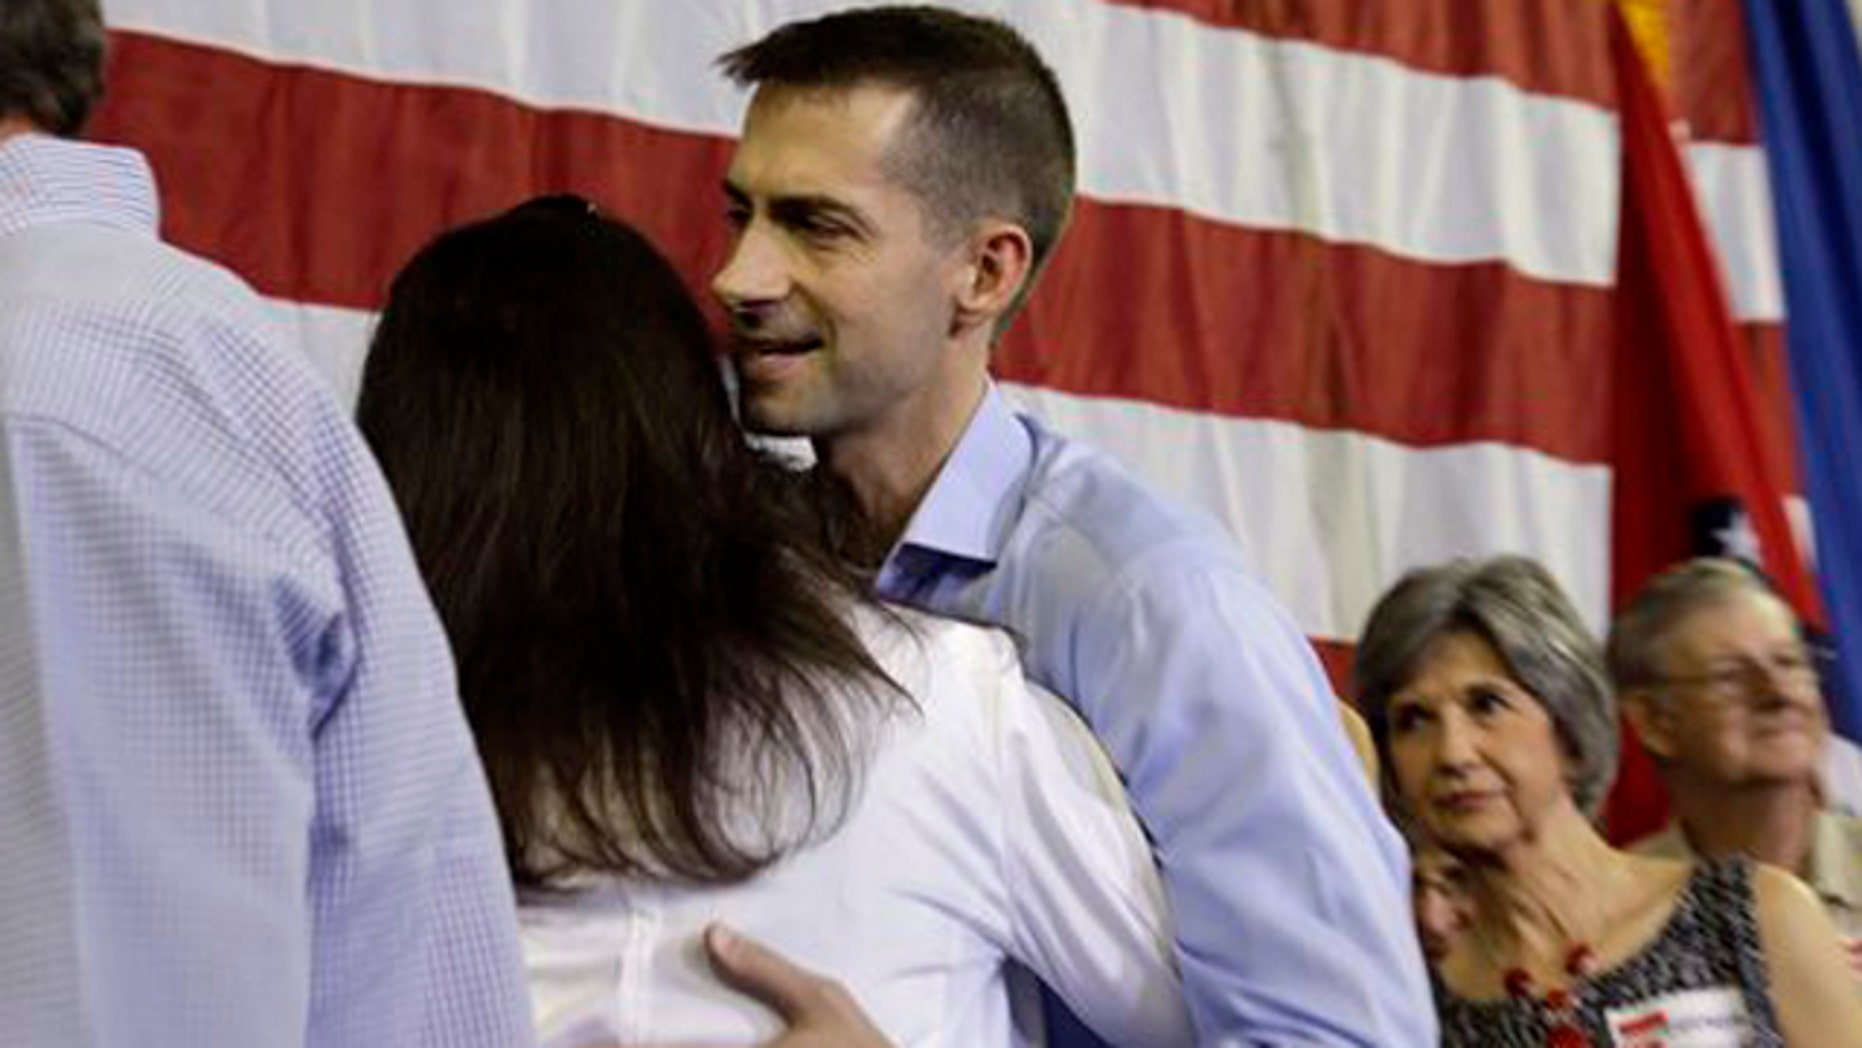 FILE: Aug. 6, 2013: Rep. Tom Cotton, R-Ark., center, greets a supporter after announcing his candidacy for Senate, in Dardanelle, Ark.